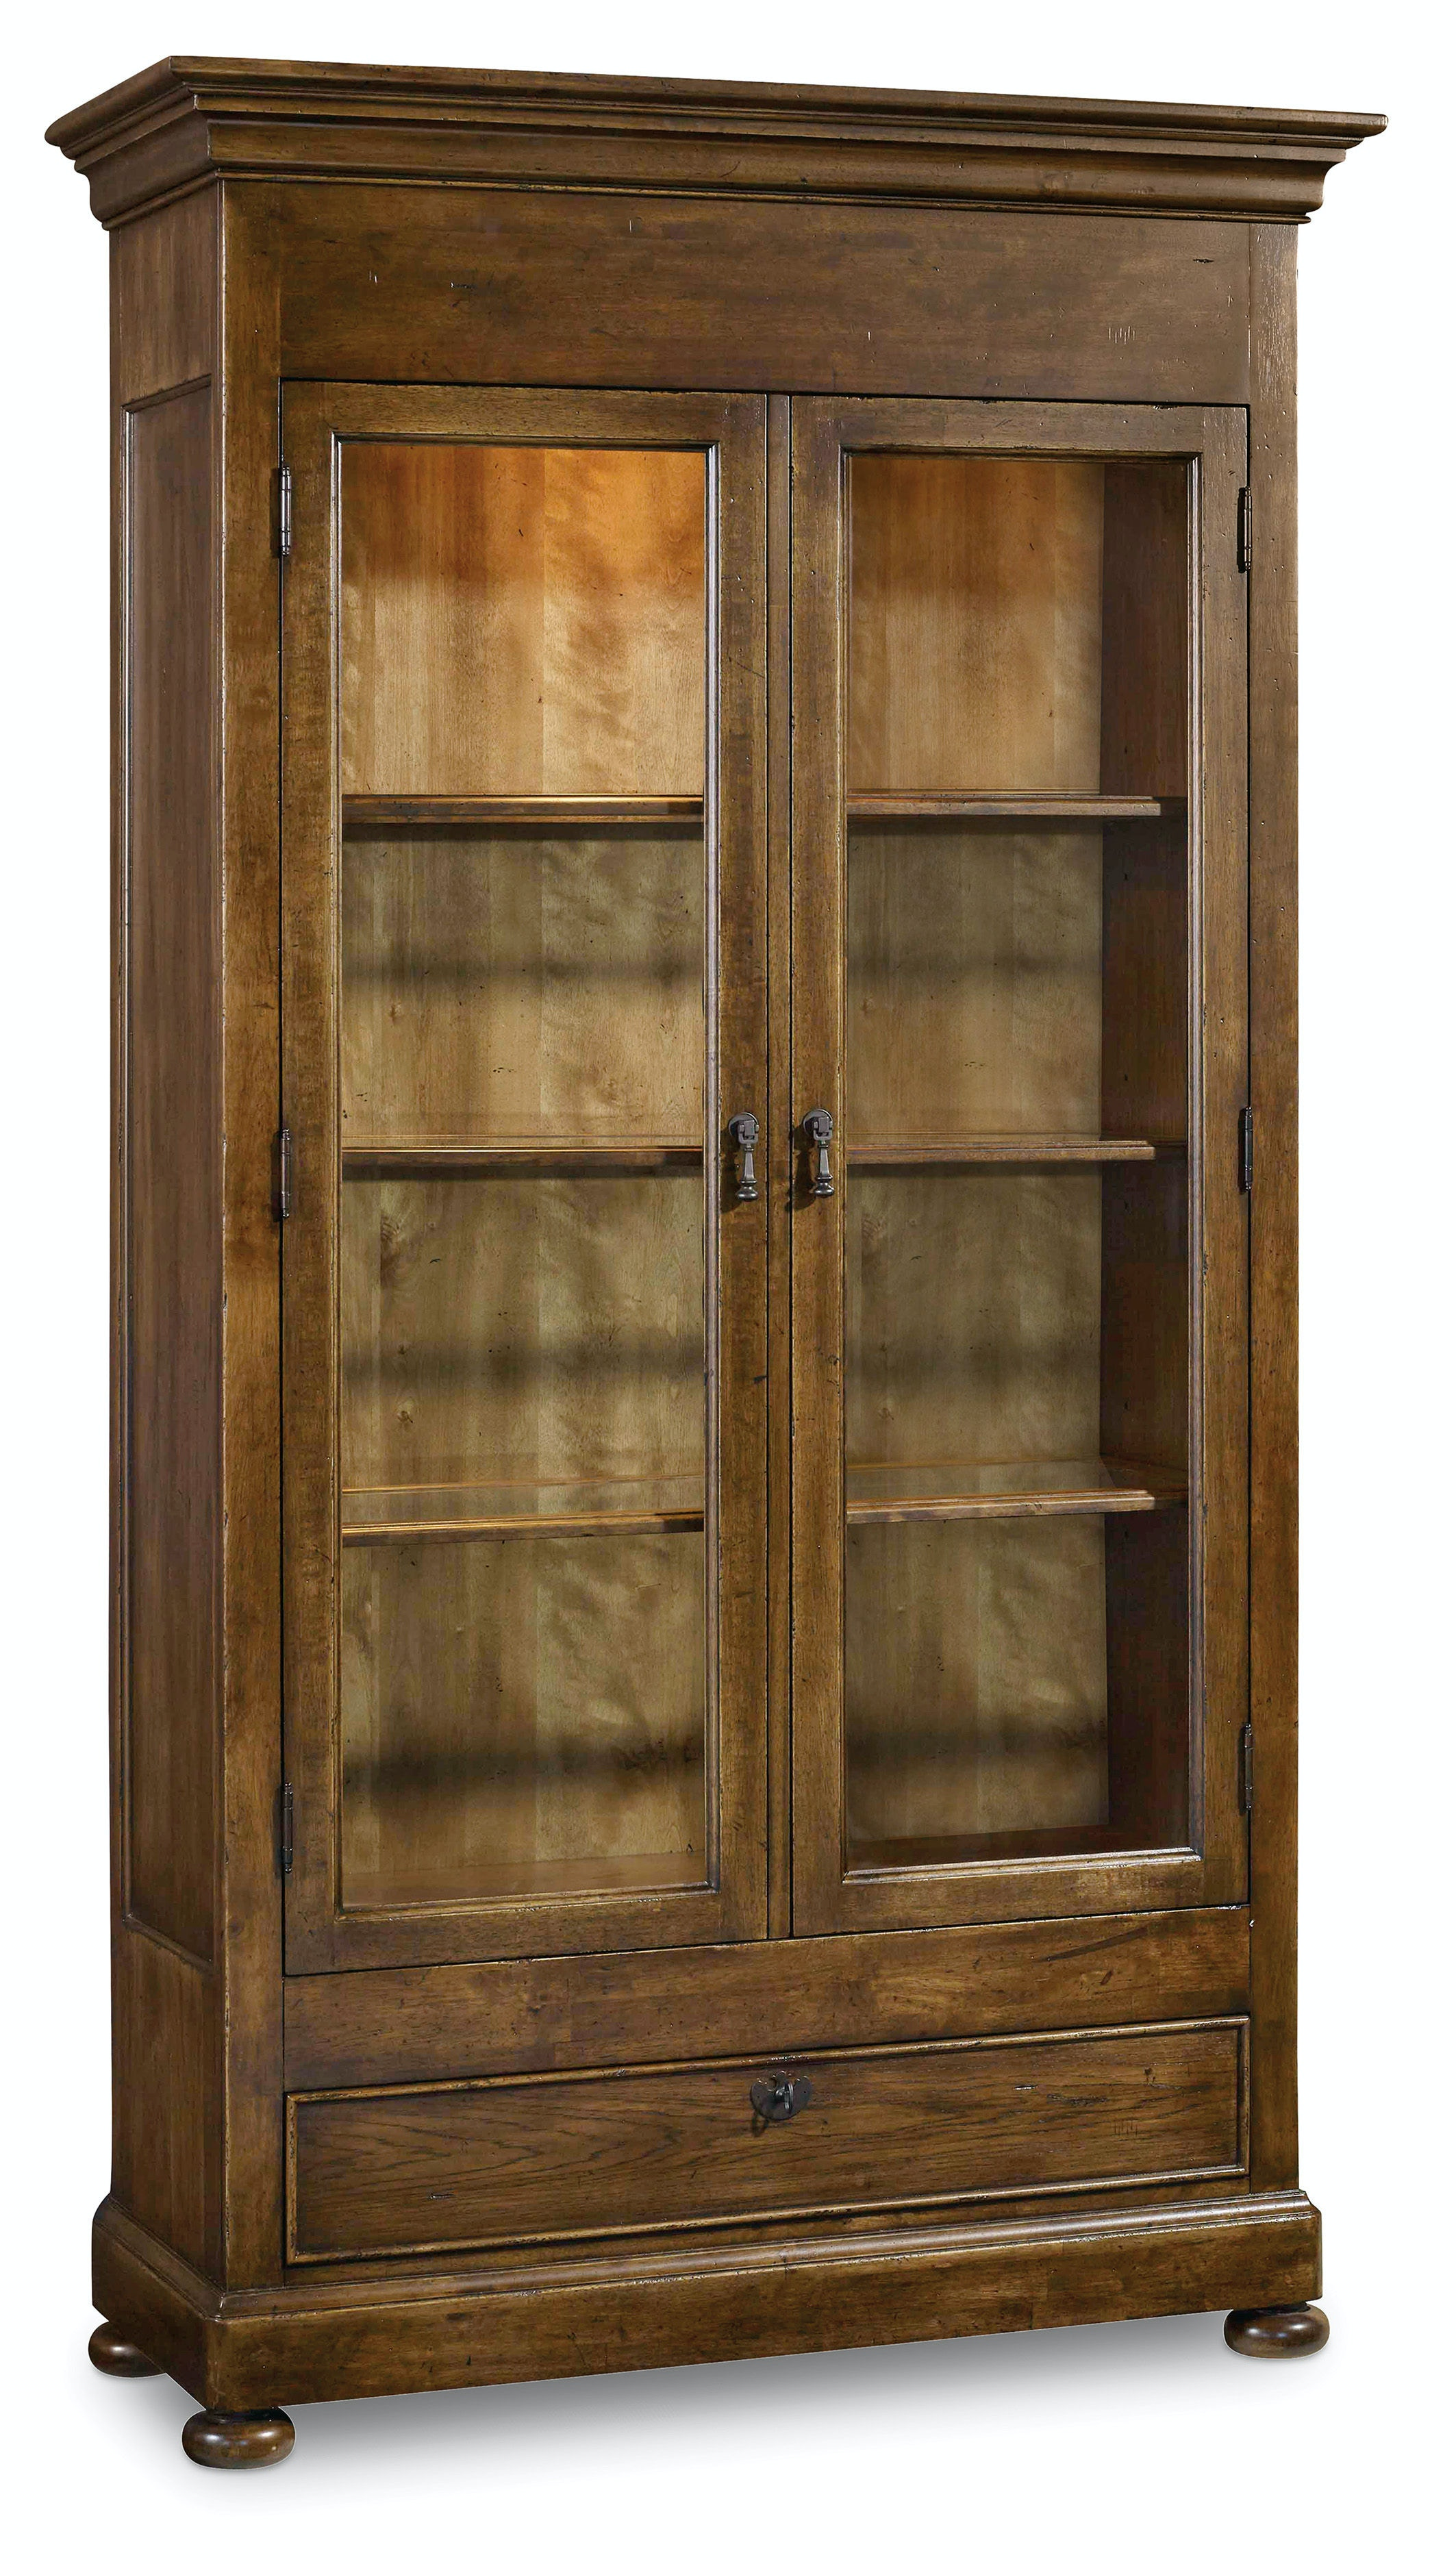 Hooker furniture dining room archivist display cabinet for Dining room display cabinets